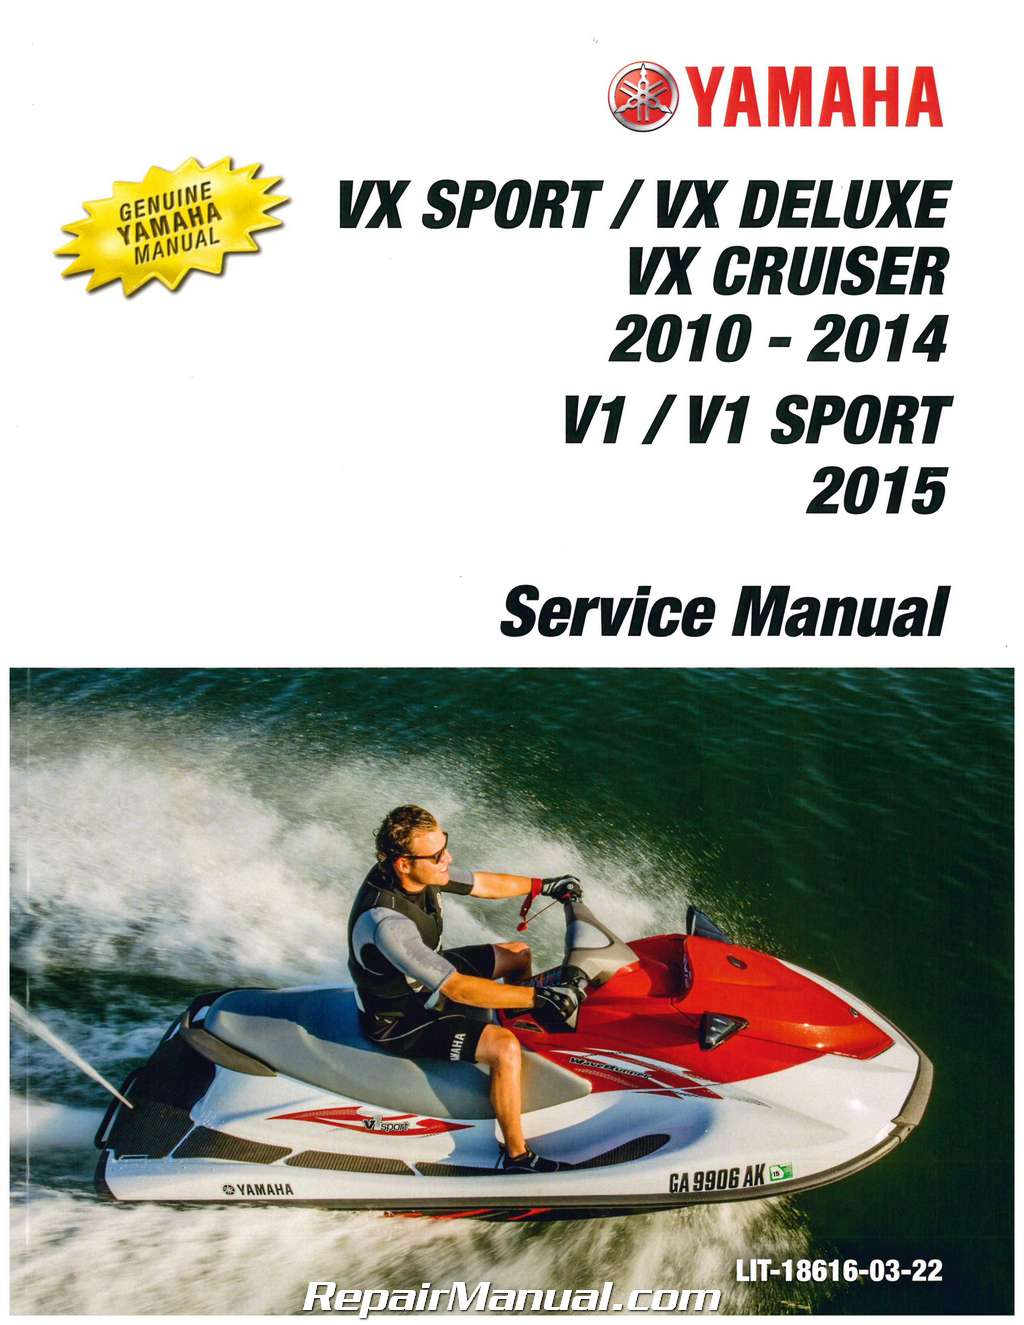 Yamaha waverunner vx 110 service manual user guide manual that 2010 2014 yamaha vx1100 cruiser deluxe 2015 v1 sport waverunner rh repairmanual com 2009 yamaha vx fandeluxe Images